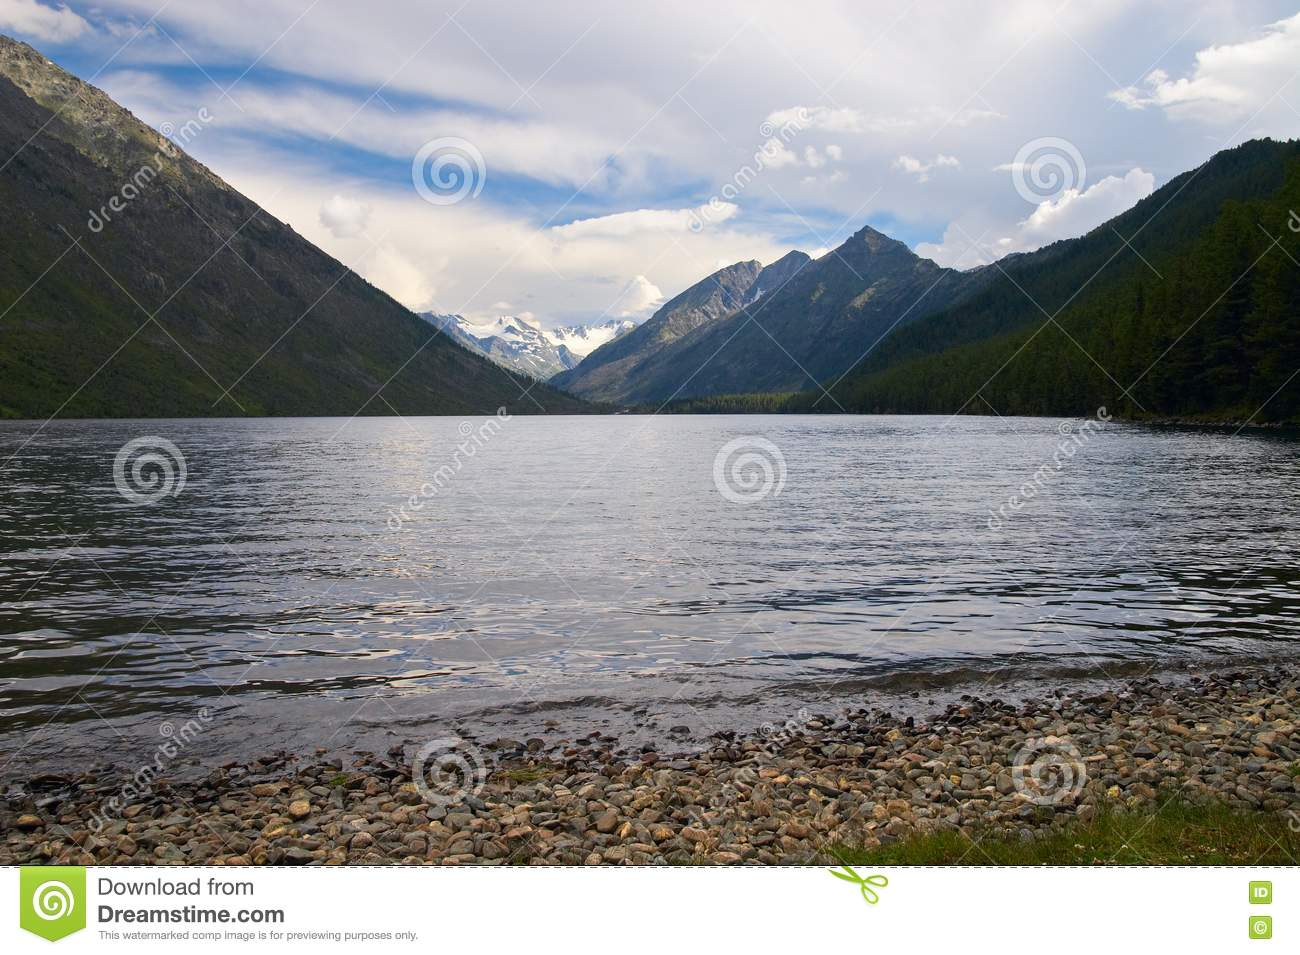 Mountains landscape and lake.